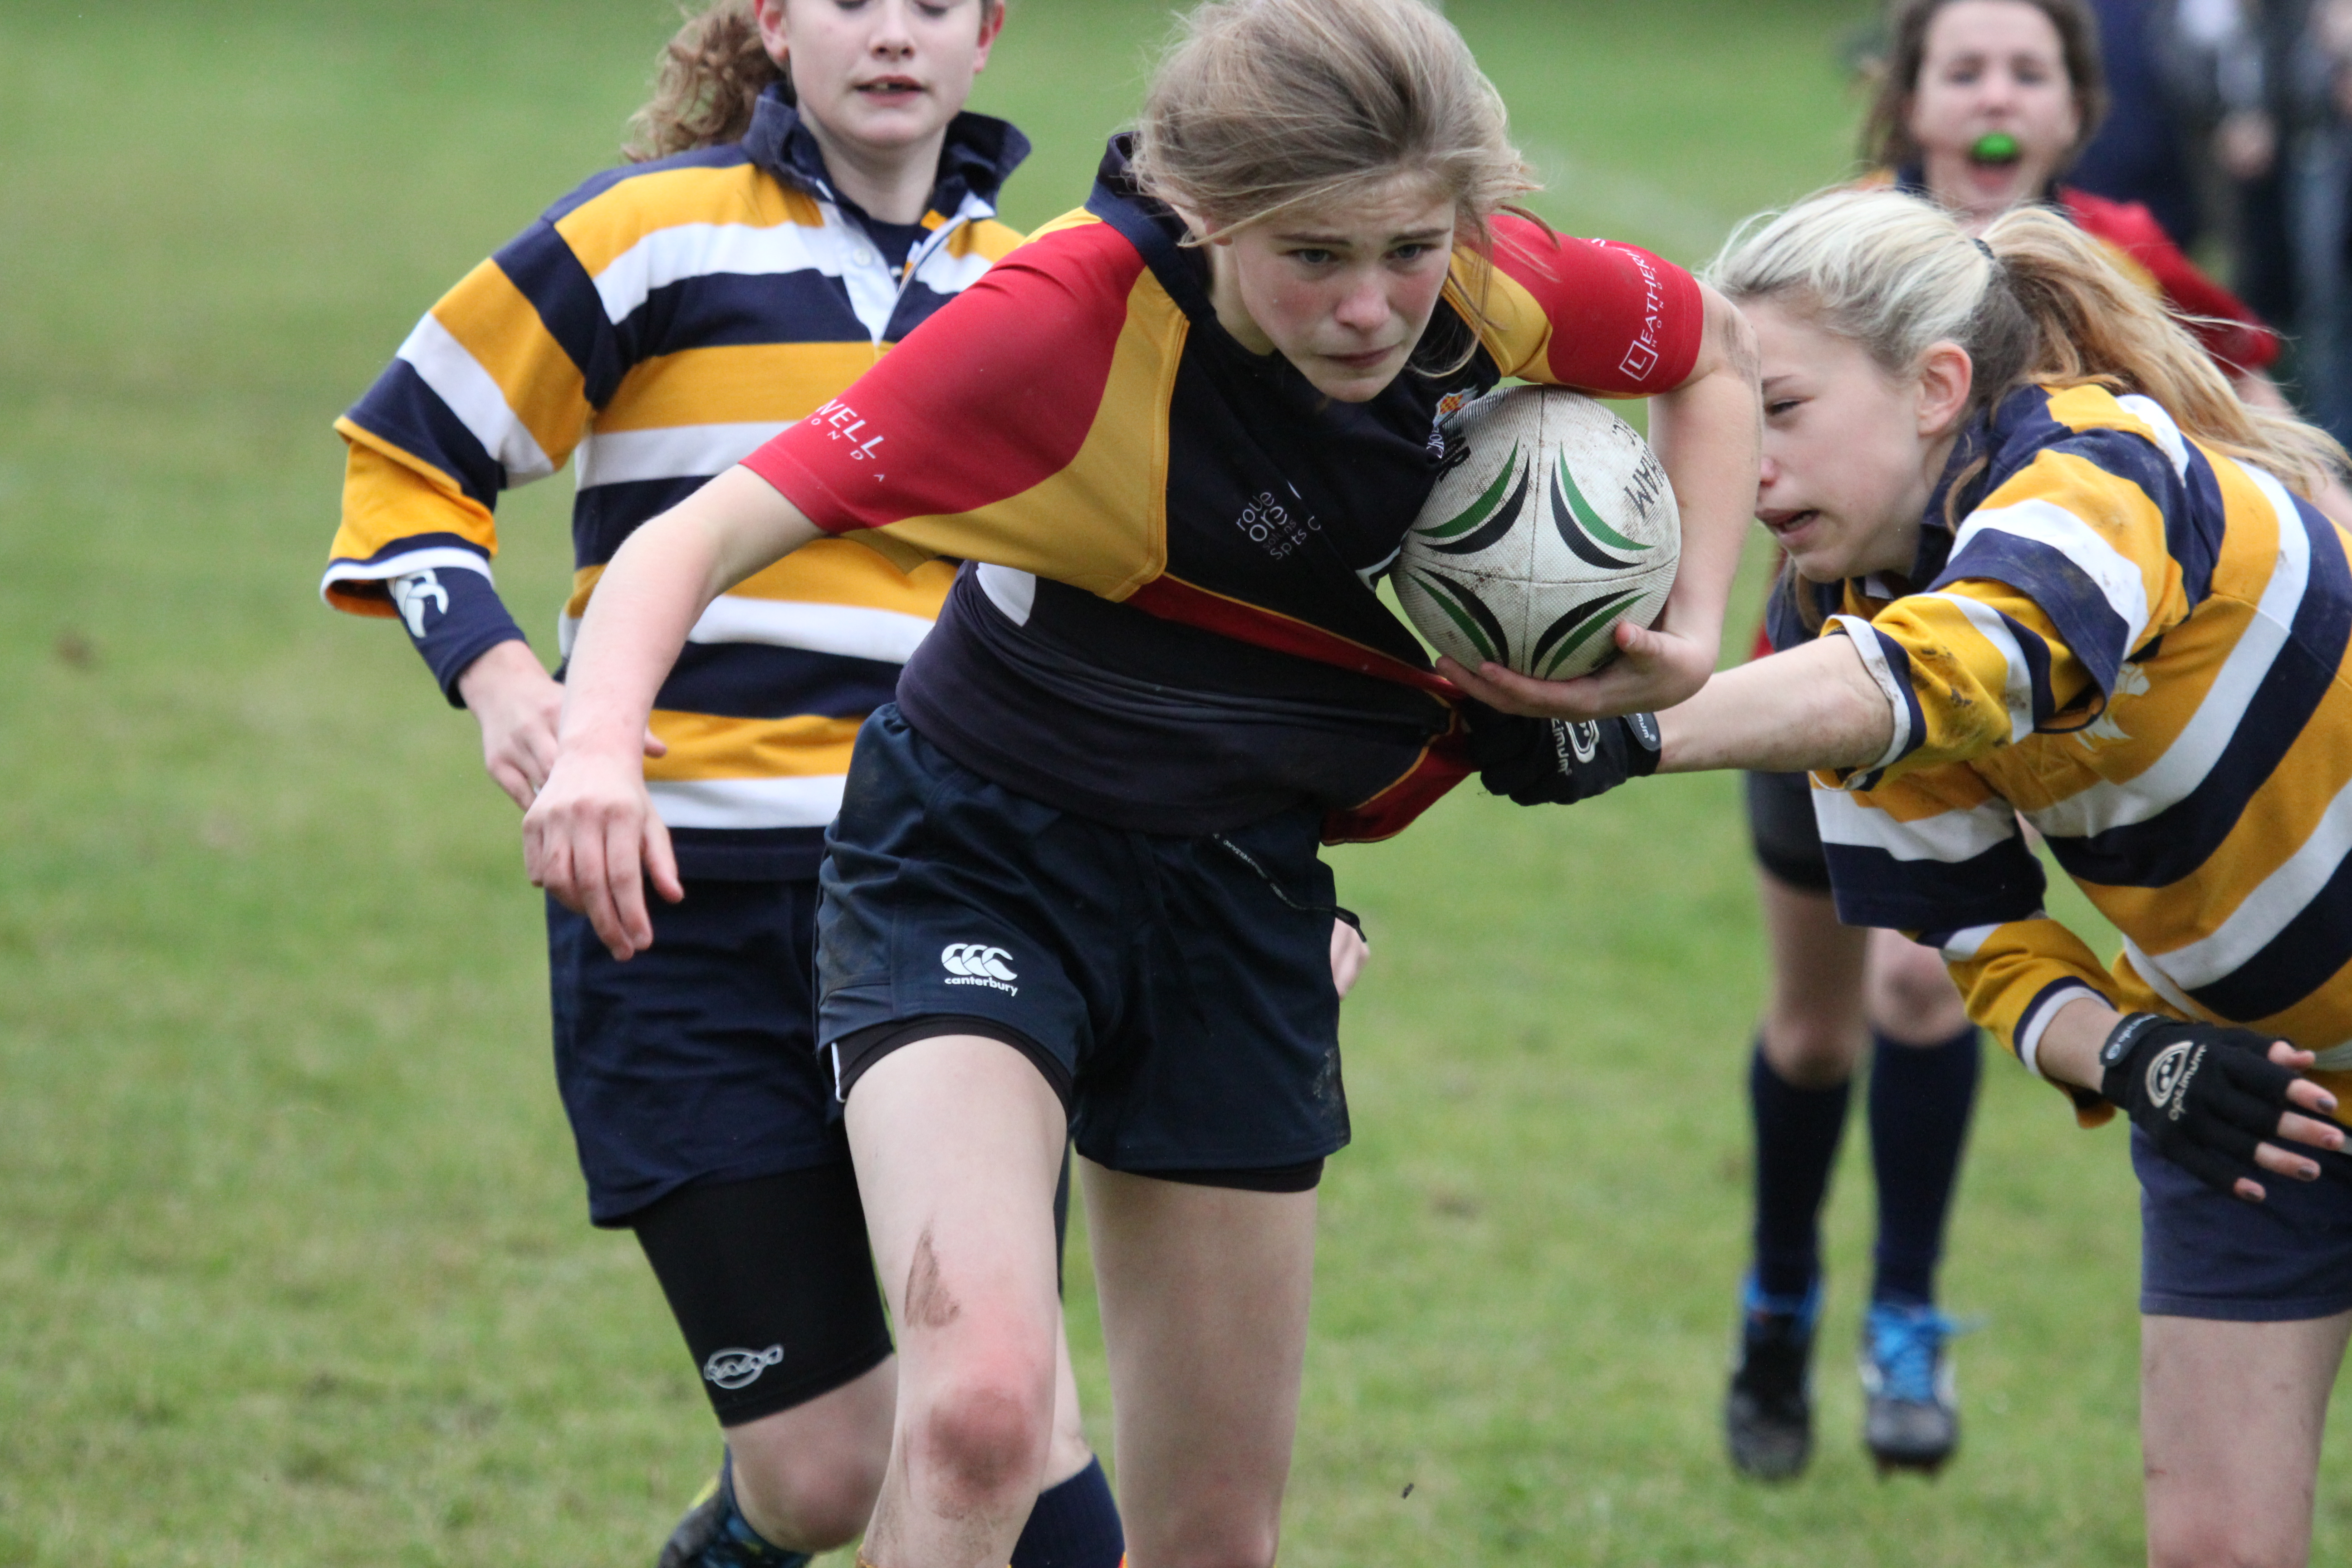 Rugby girls images 49